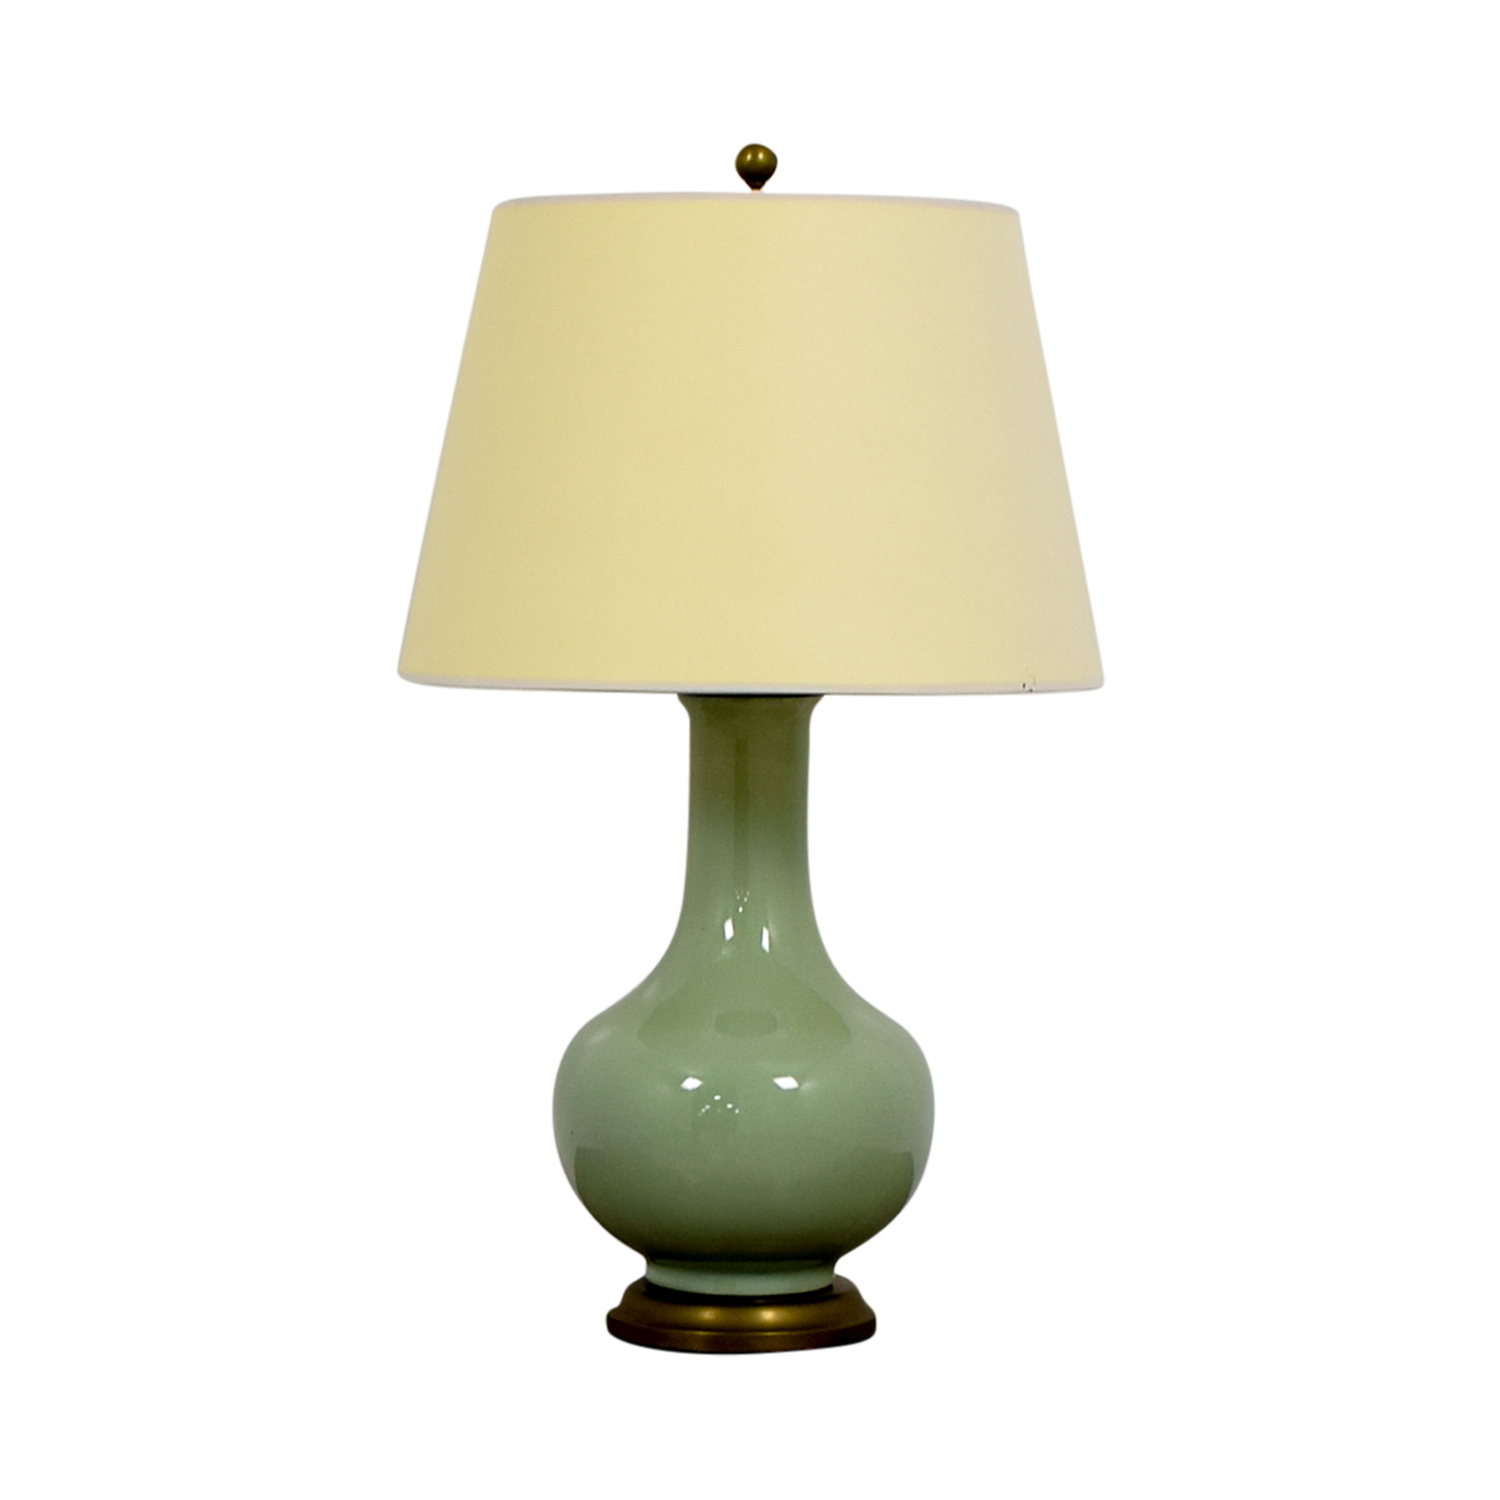 Williams Sonoma Home Mint Green Ceramic and Brass Table Lamp / Lamps